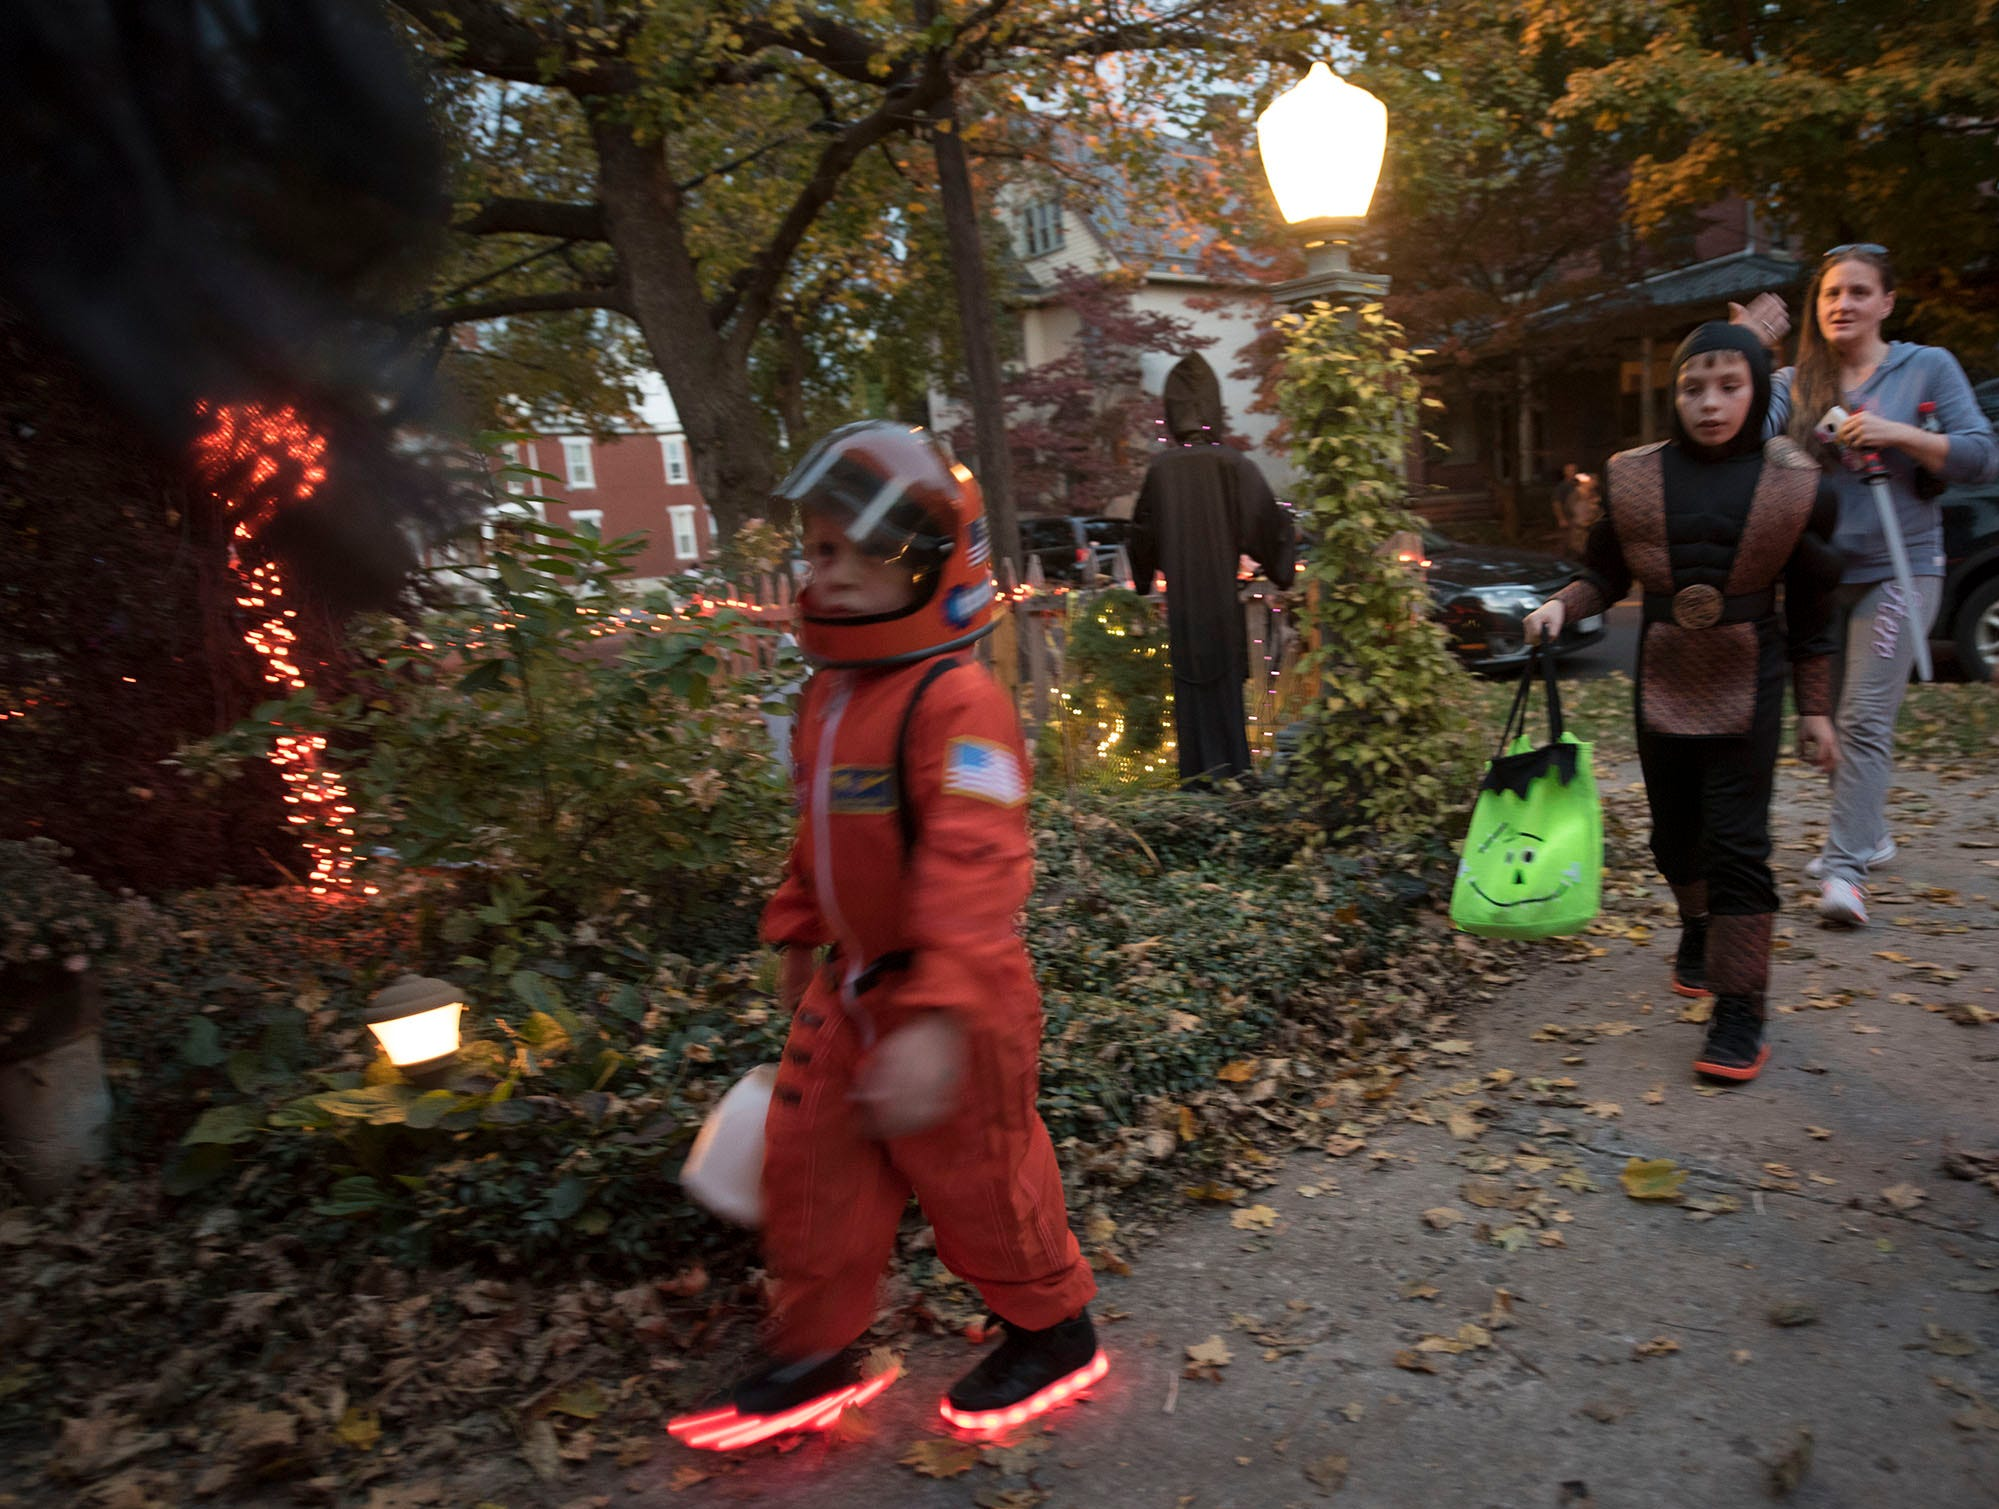 Bob and Sarah Prince hosted their annual Halloween Haunted House at 47 Fifth Avenue, Chambersburg, do the delight of trick-or-treaters.